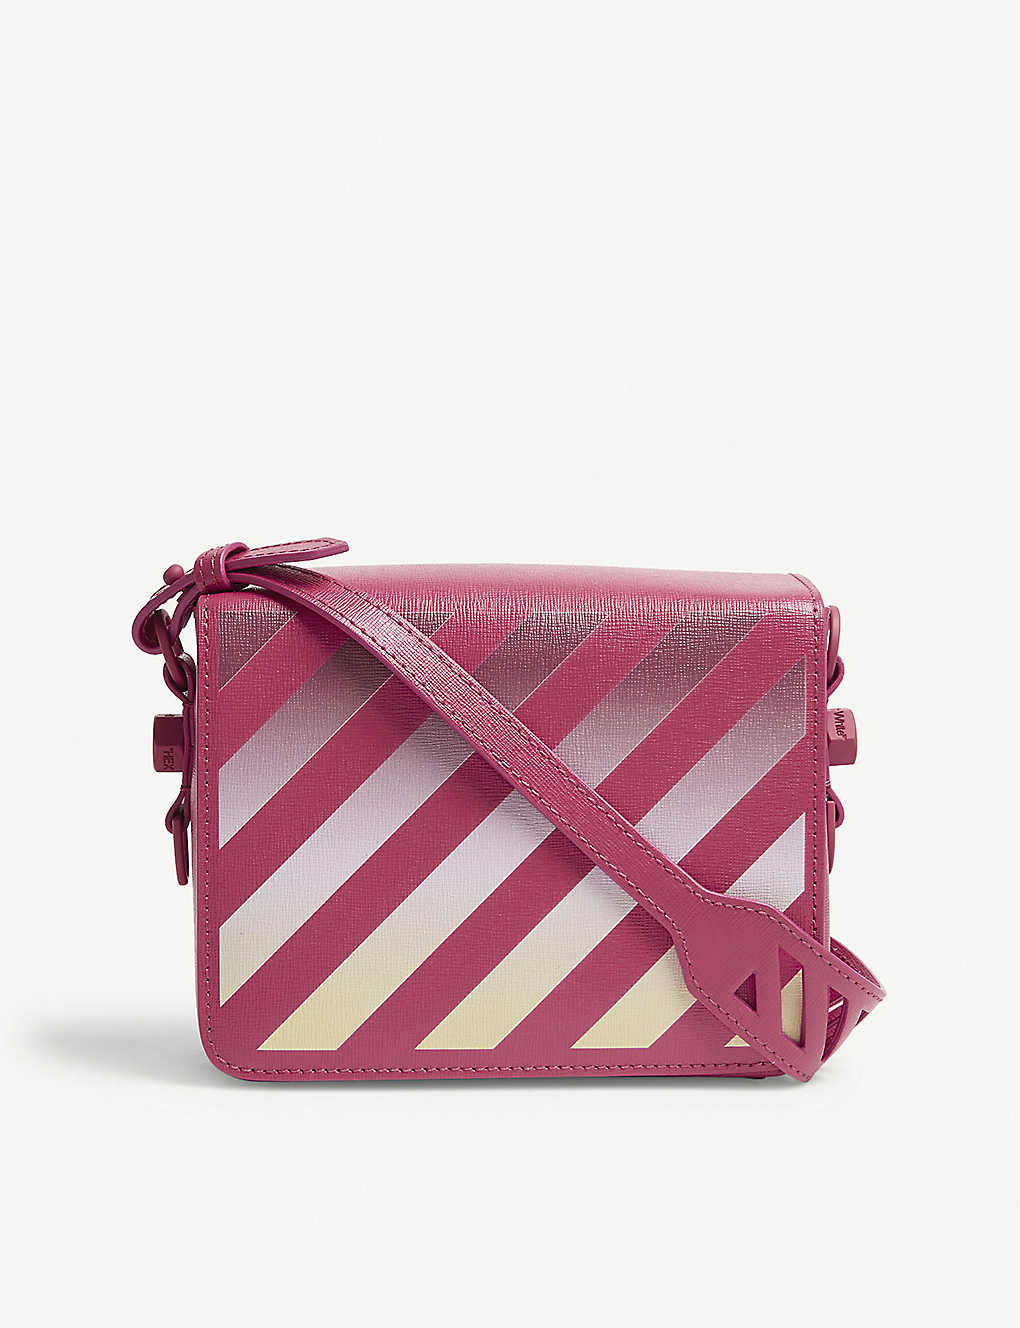 4d3bd1a61 OFF-WHITE C/O VIRGIL ABLOH Gradient diagonal stripe leather shoulder bag